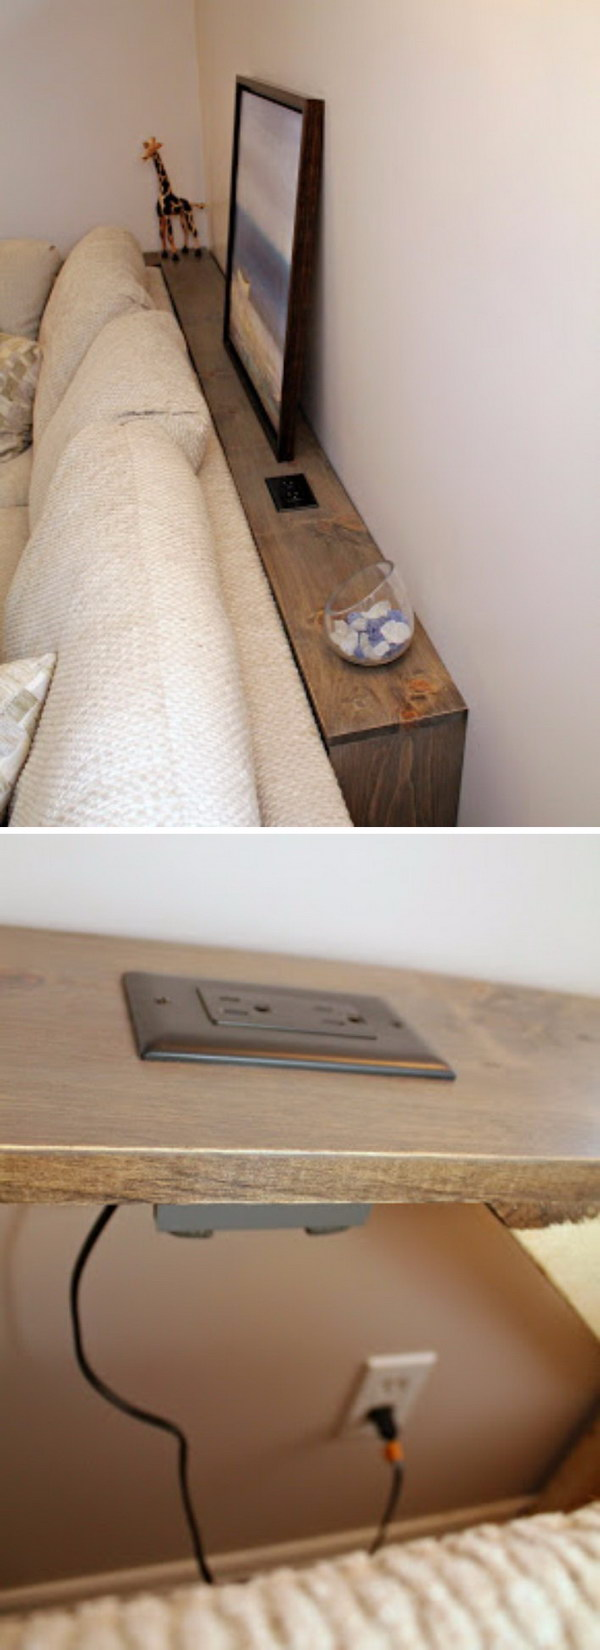 This DIY sofa table has a built-in outlet which allows you plug in your electronics easily.